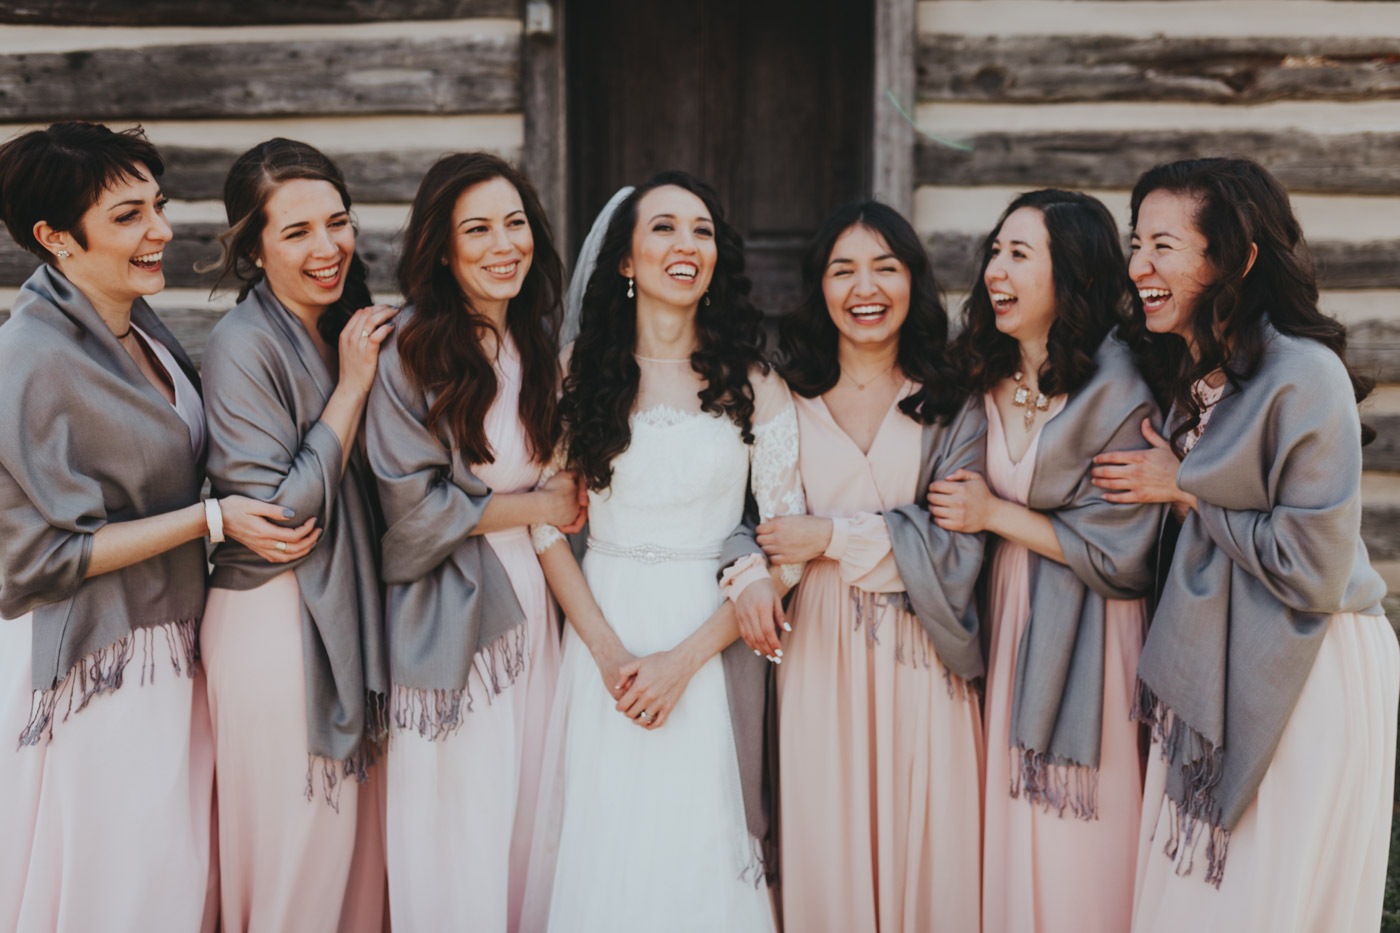 best laughing bridesmaids pic Emily Anne photo art hispanic weddings/weddings in Nashville